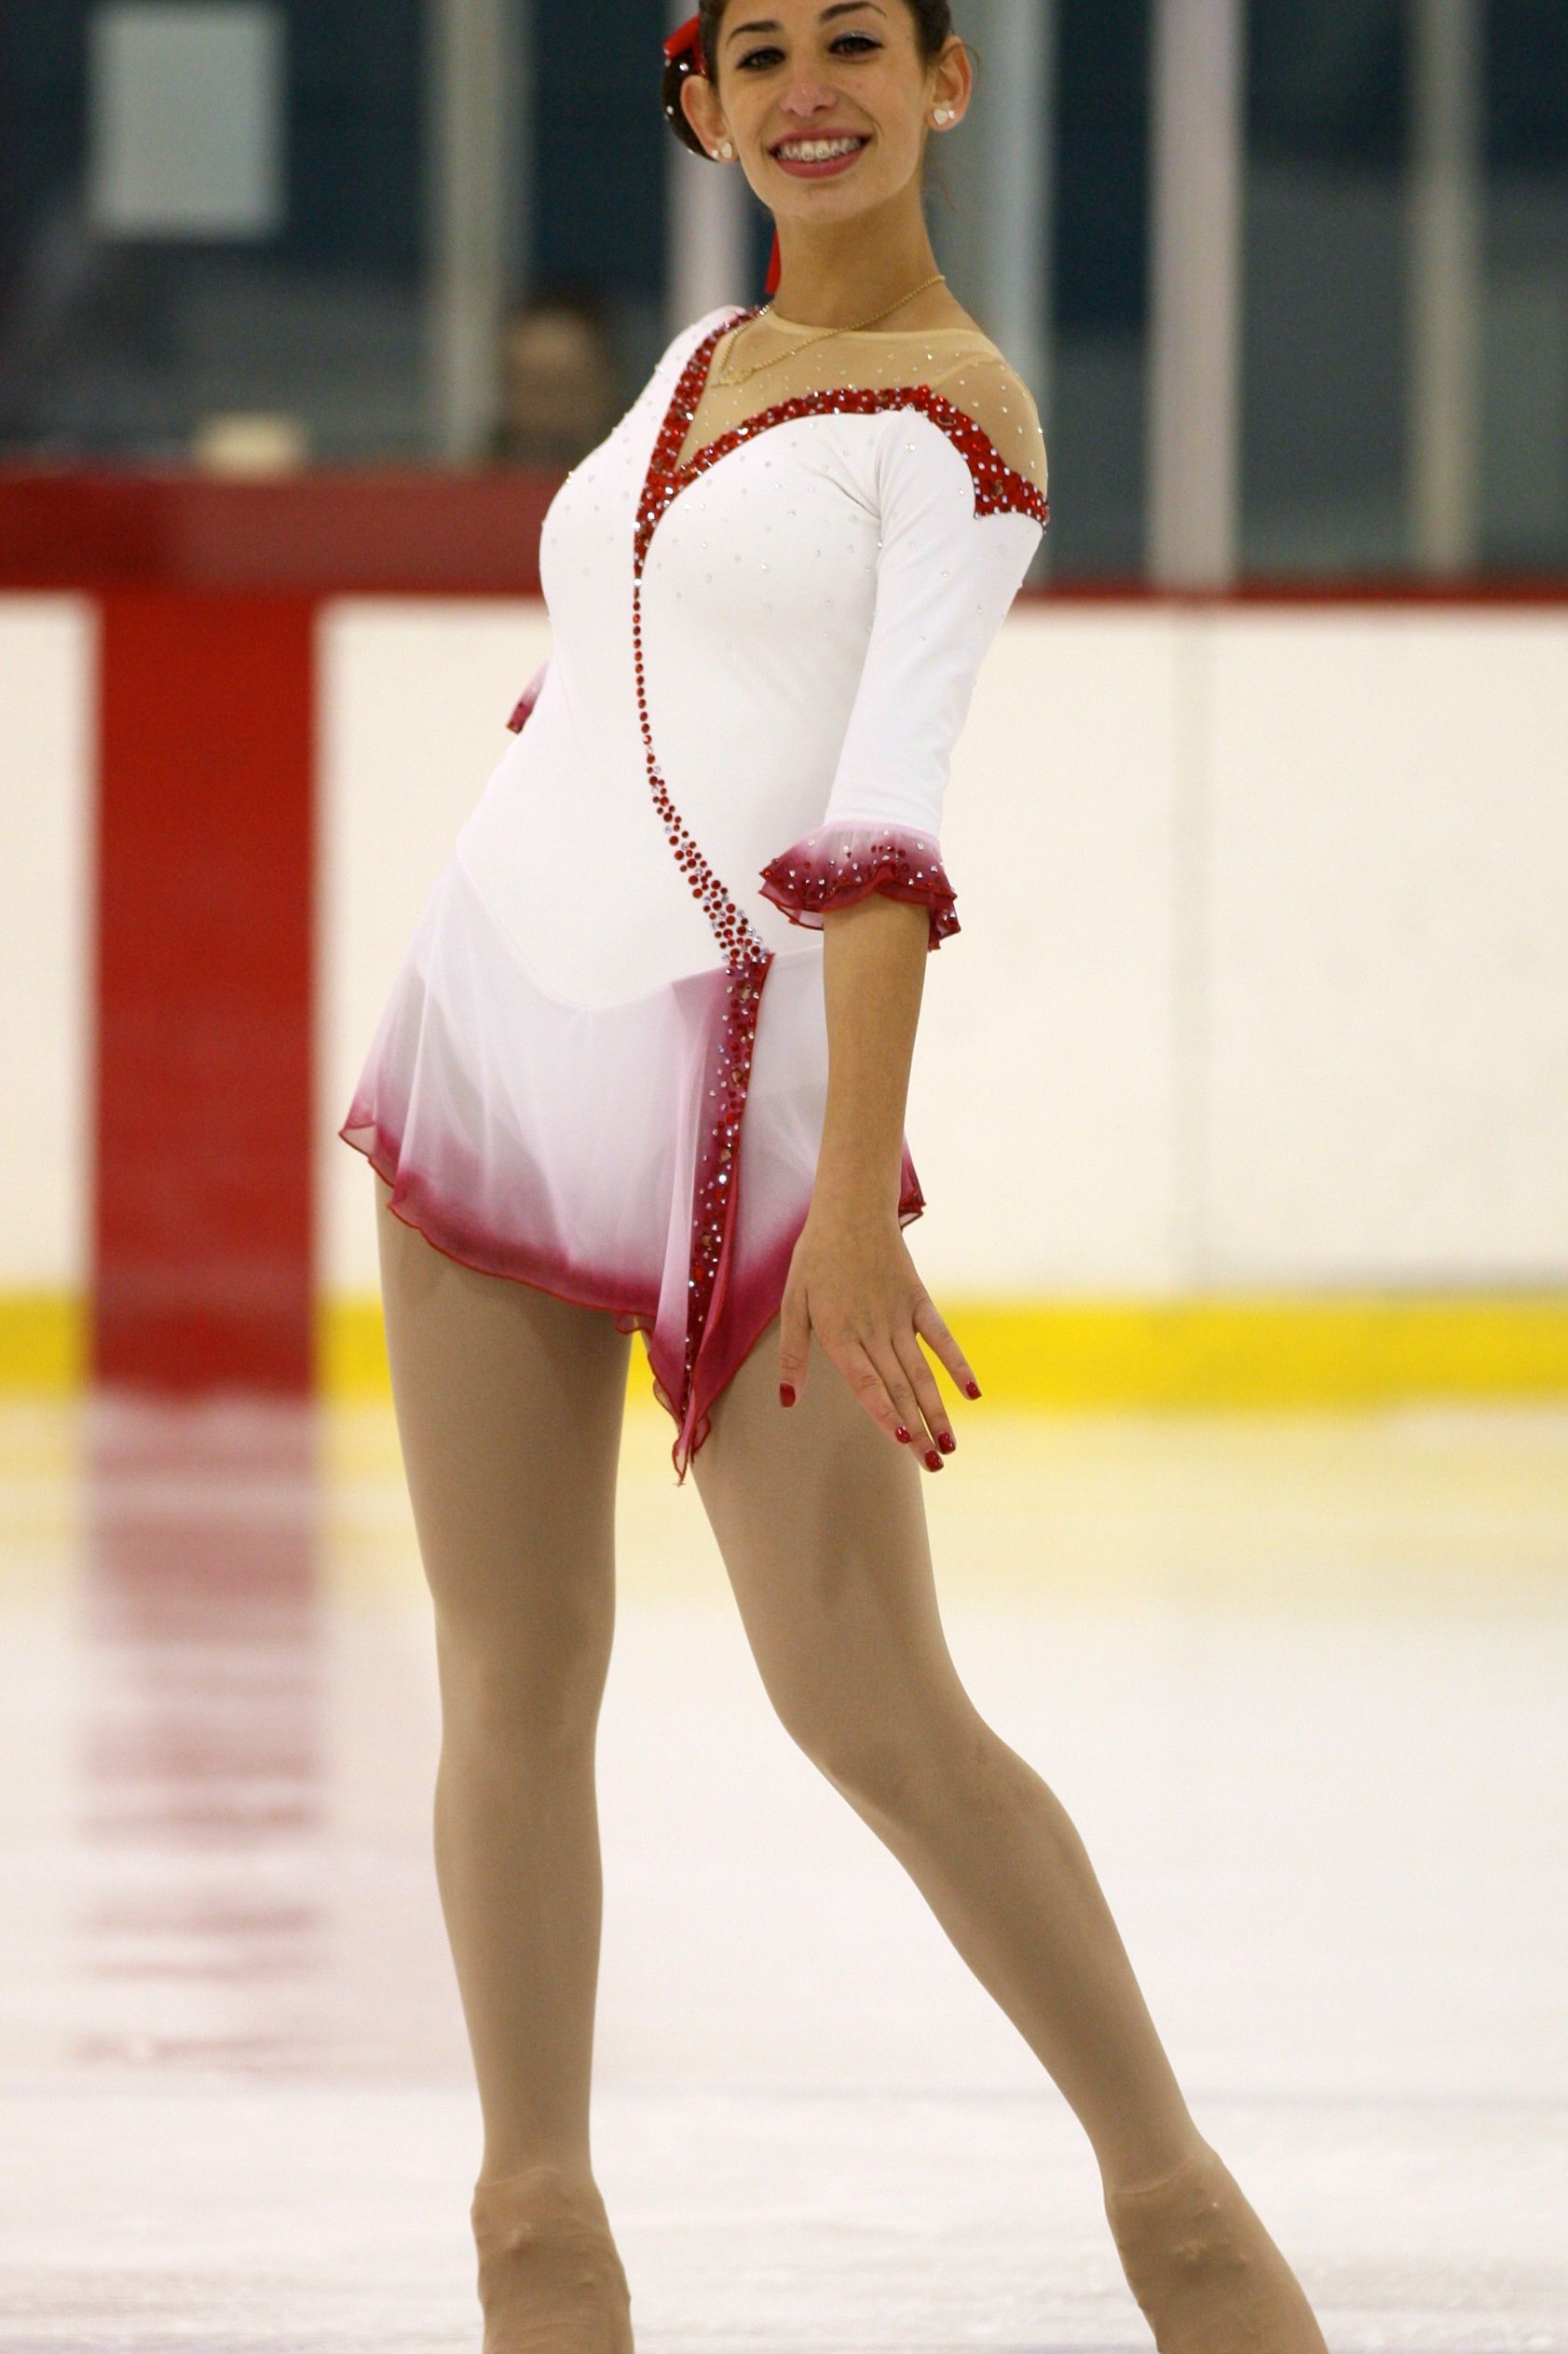 Custom Figure Skating Dress By Kelley Matthews Designs for a West ...